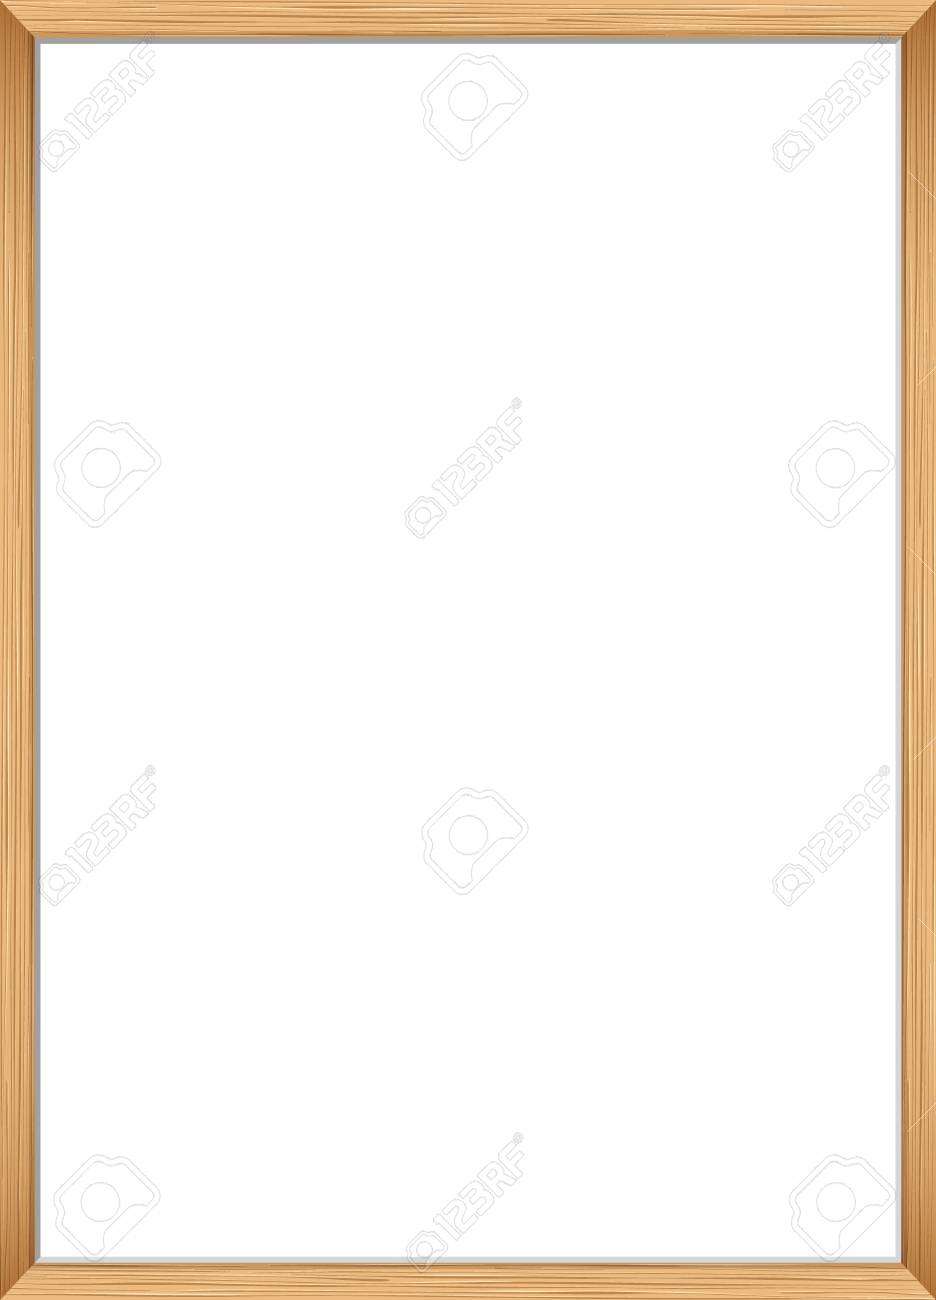 Blank picture frame template. Realistic wooden frame for photo or poster. Vertical orientation A4 - 102210661